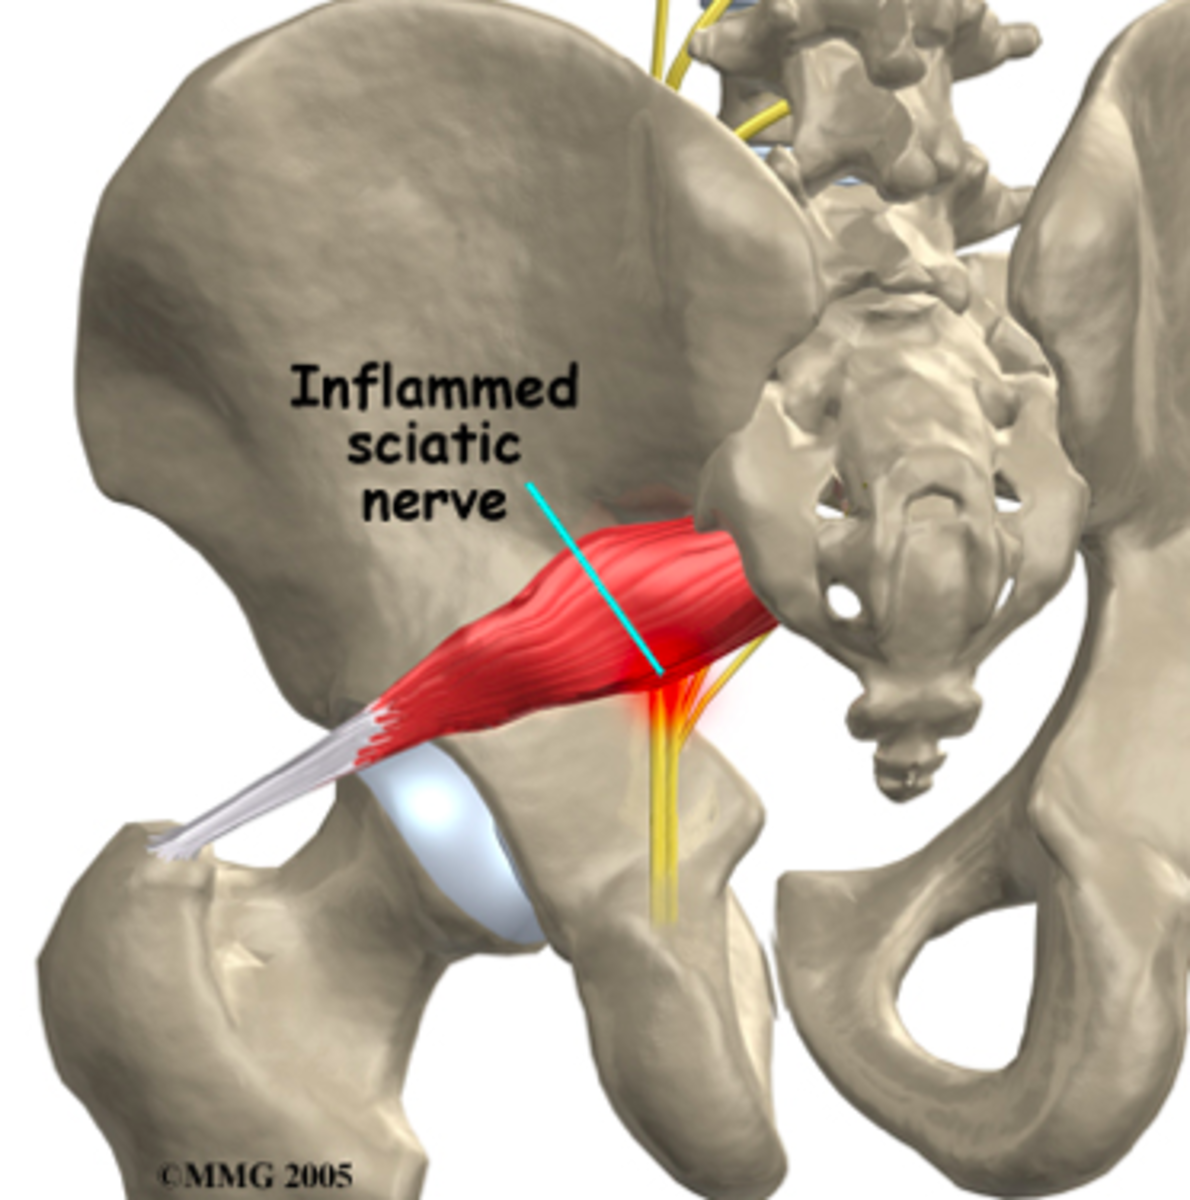 Sciatic nerve is the largest nerve in your body